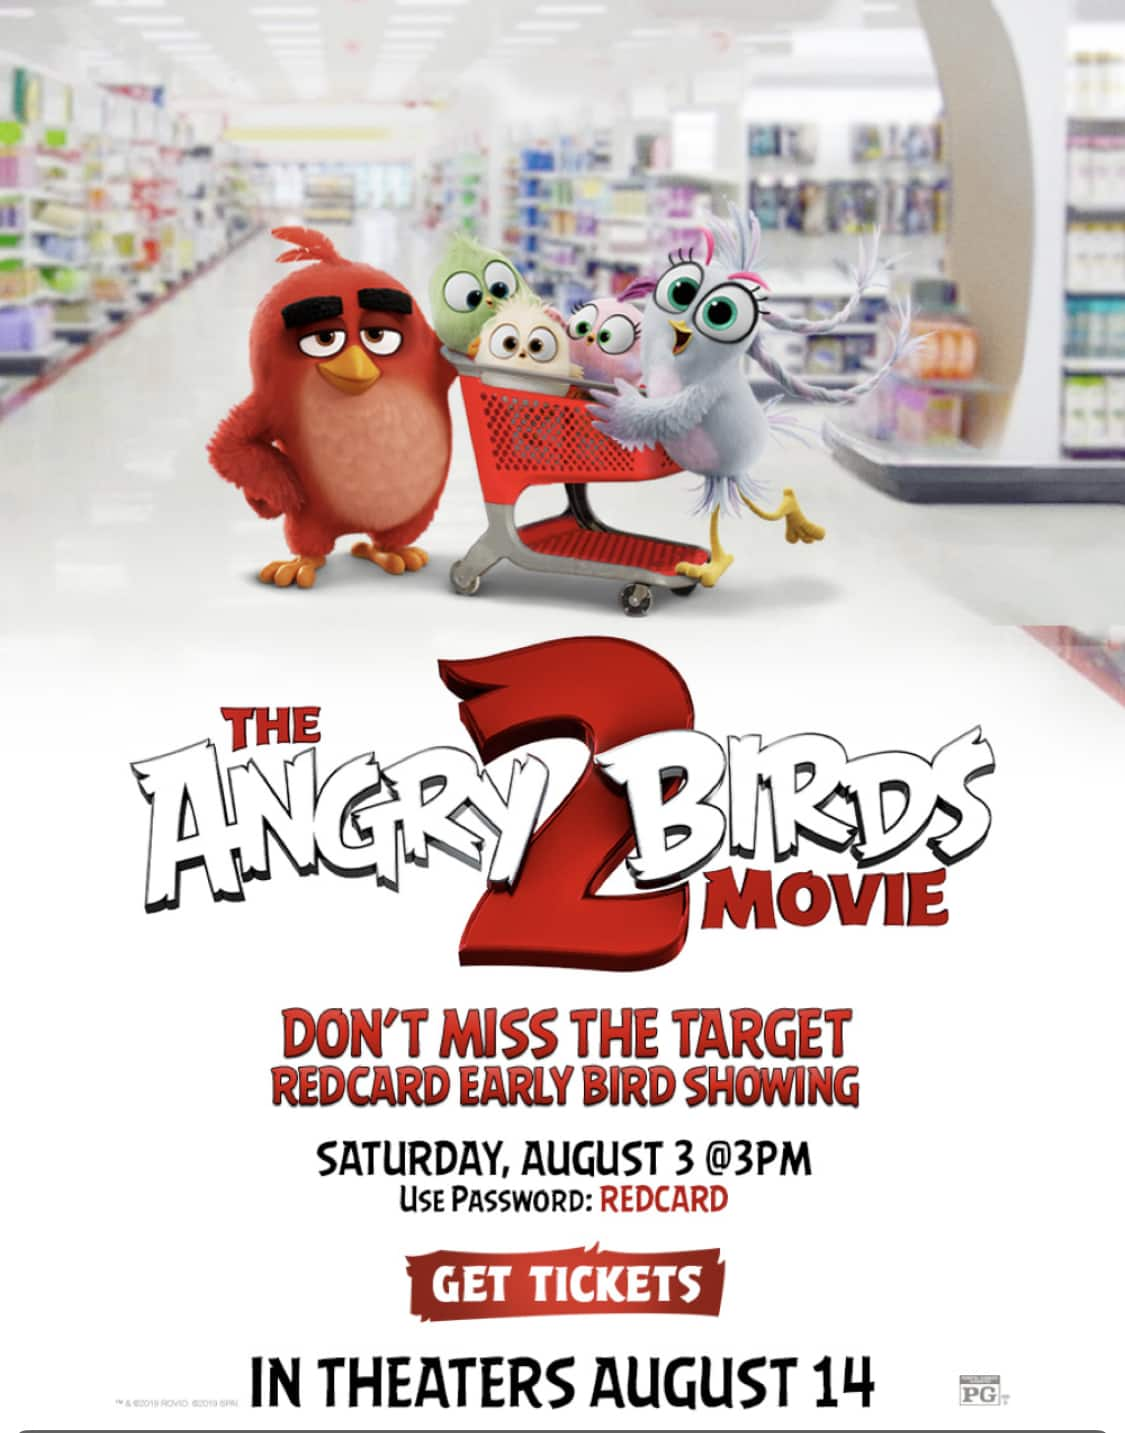 THE ANGRY BIRDS MOVIE 2 Early Bird Show